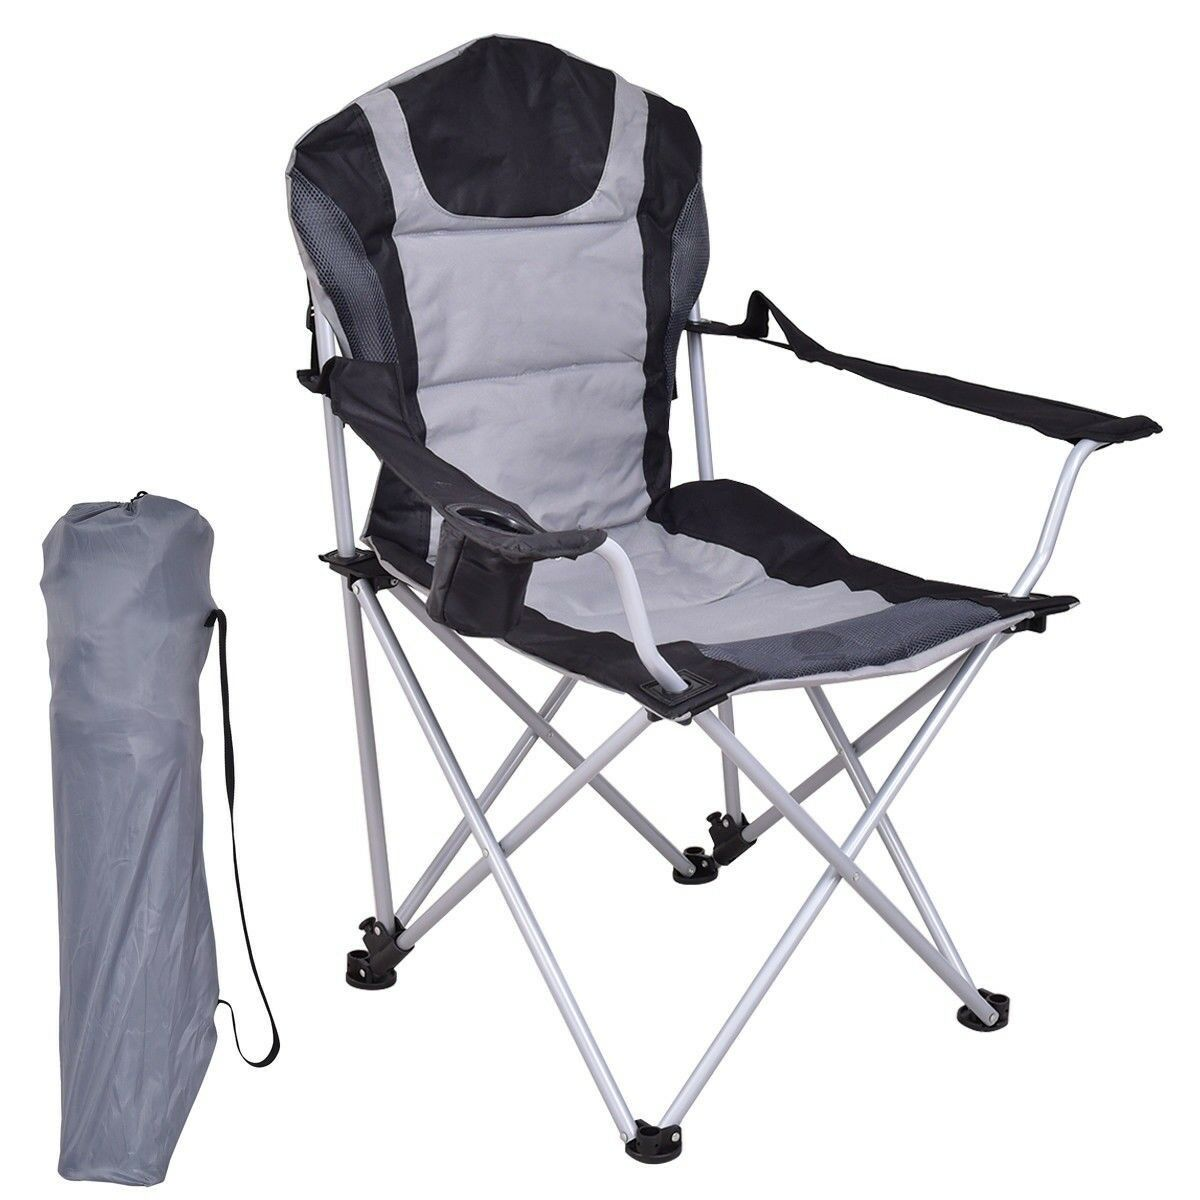 Outdoor  Portable Fishing Stable Chair Seat w Cup Holder Beach Camping Folding  cheaper prices